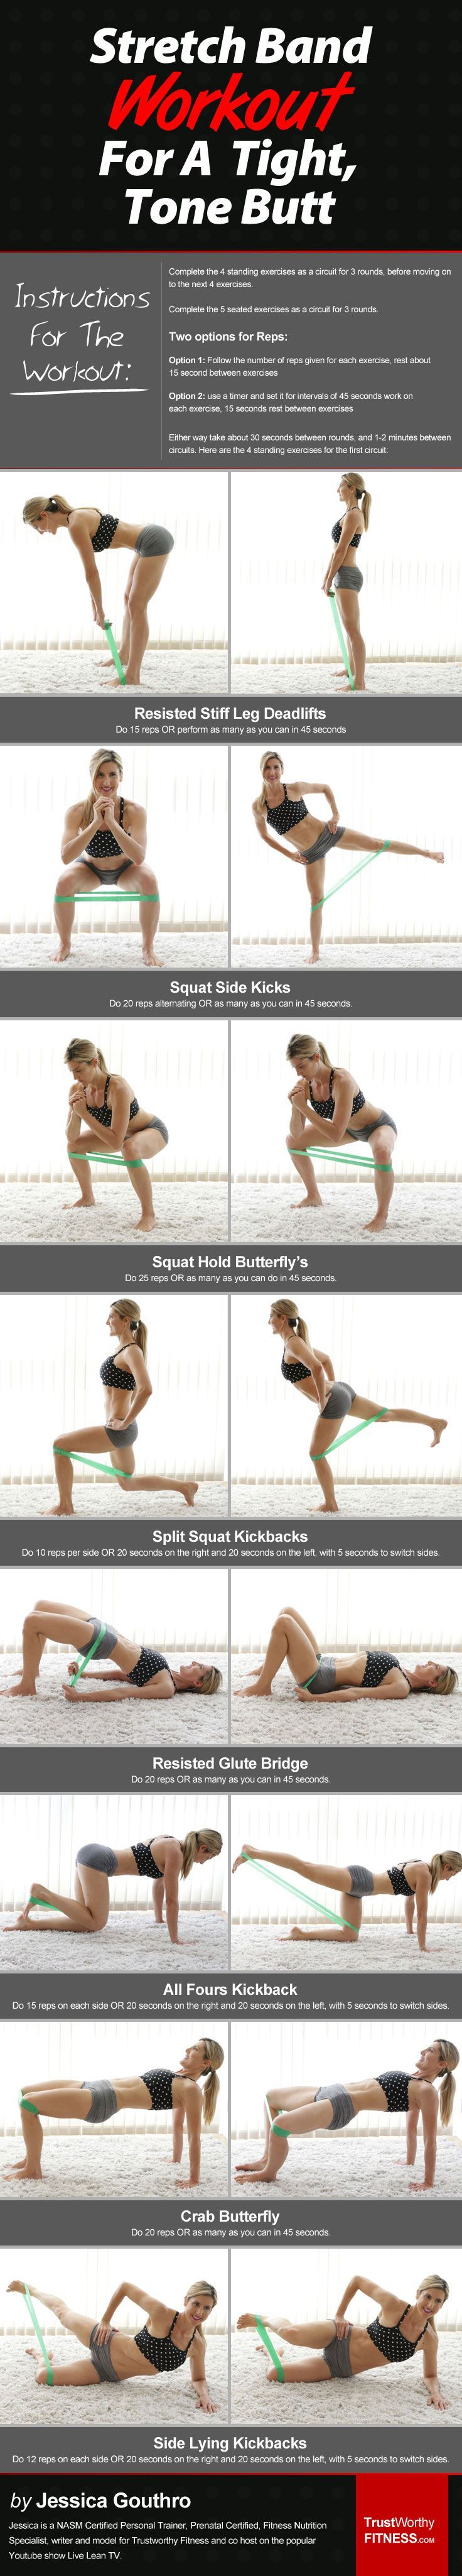 In this step by step workout discover how to get a beach ready booty without going to the gym using Stretch Bands. This workout can also be done without them too. http://trustworthyfitness.com/how-to-use-stretch-bands-tone-your-butt/ - Tap the pin if you love super heroes too! Cause guess what? you will LOVE these super hero fitness shirts!